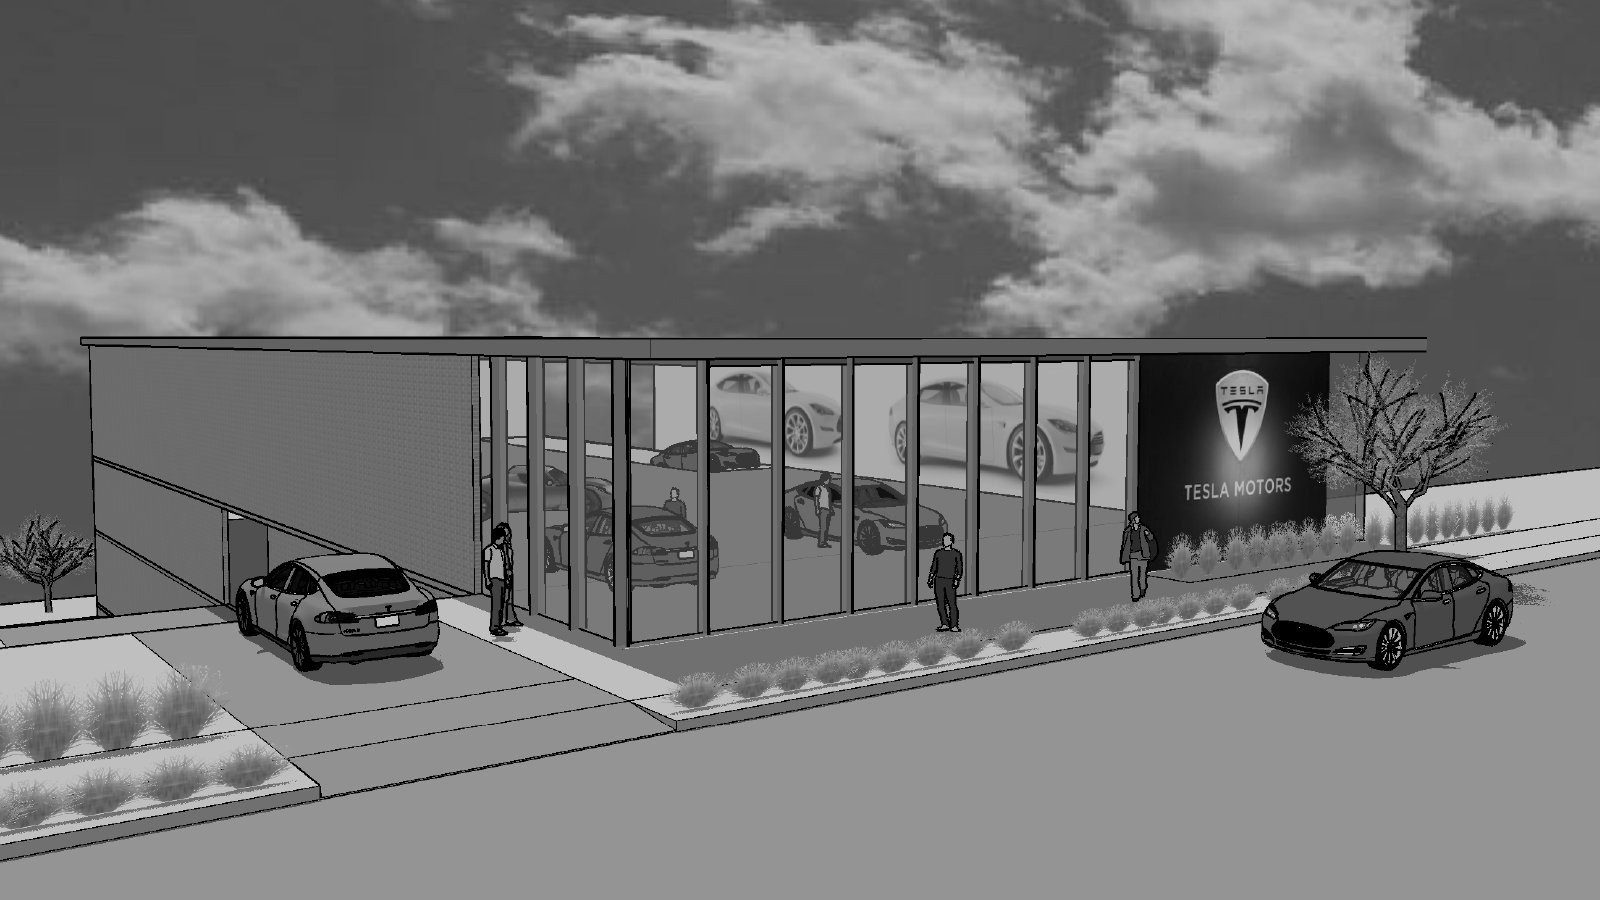 stylized, B&W photo of CONNECT ARCHITECTURE - TESLA SHOWROOM